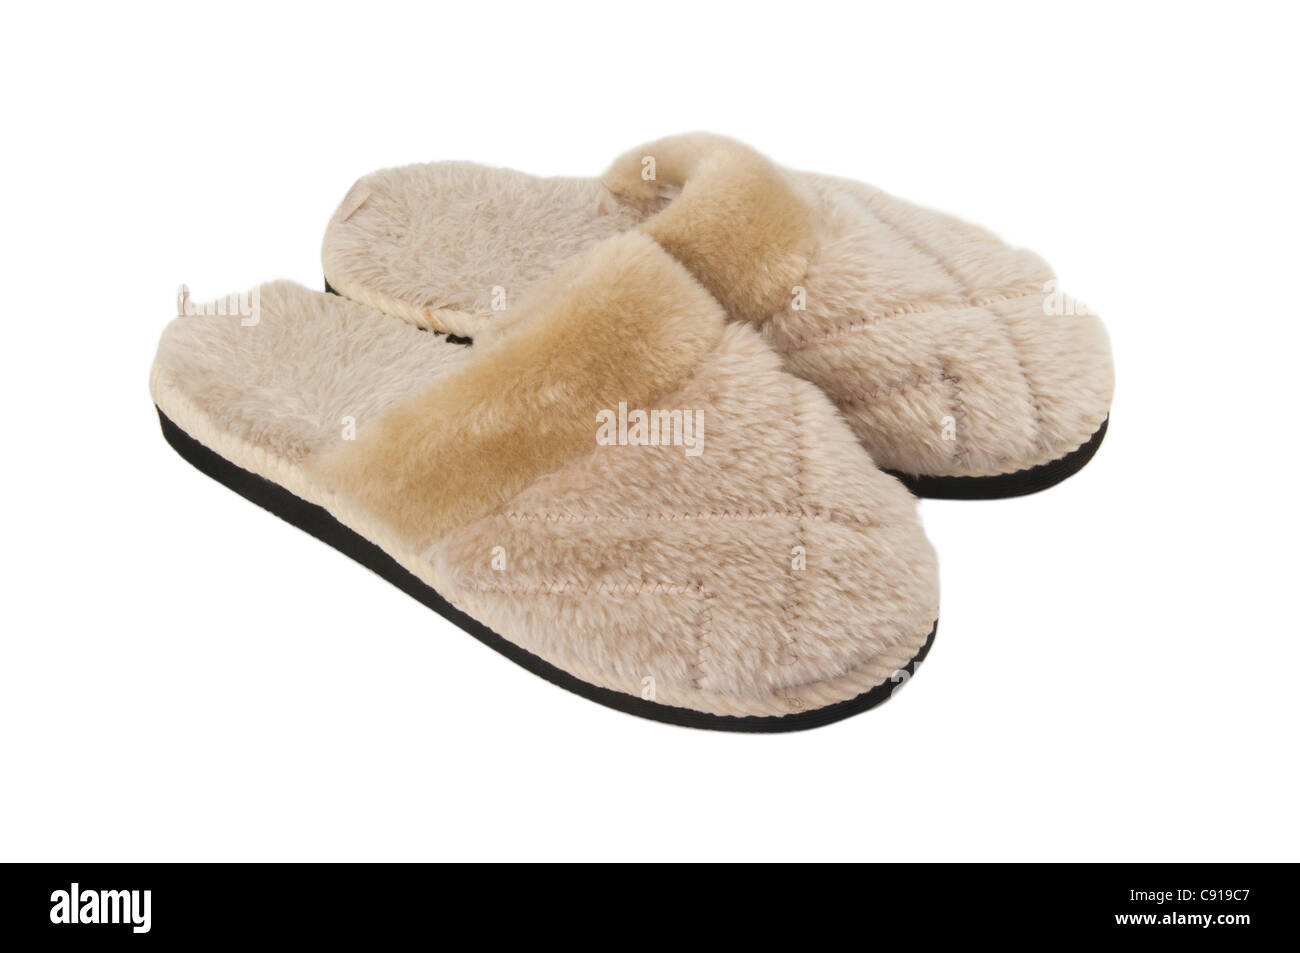 Frottee-Slipper Stockbild